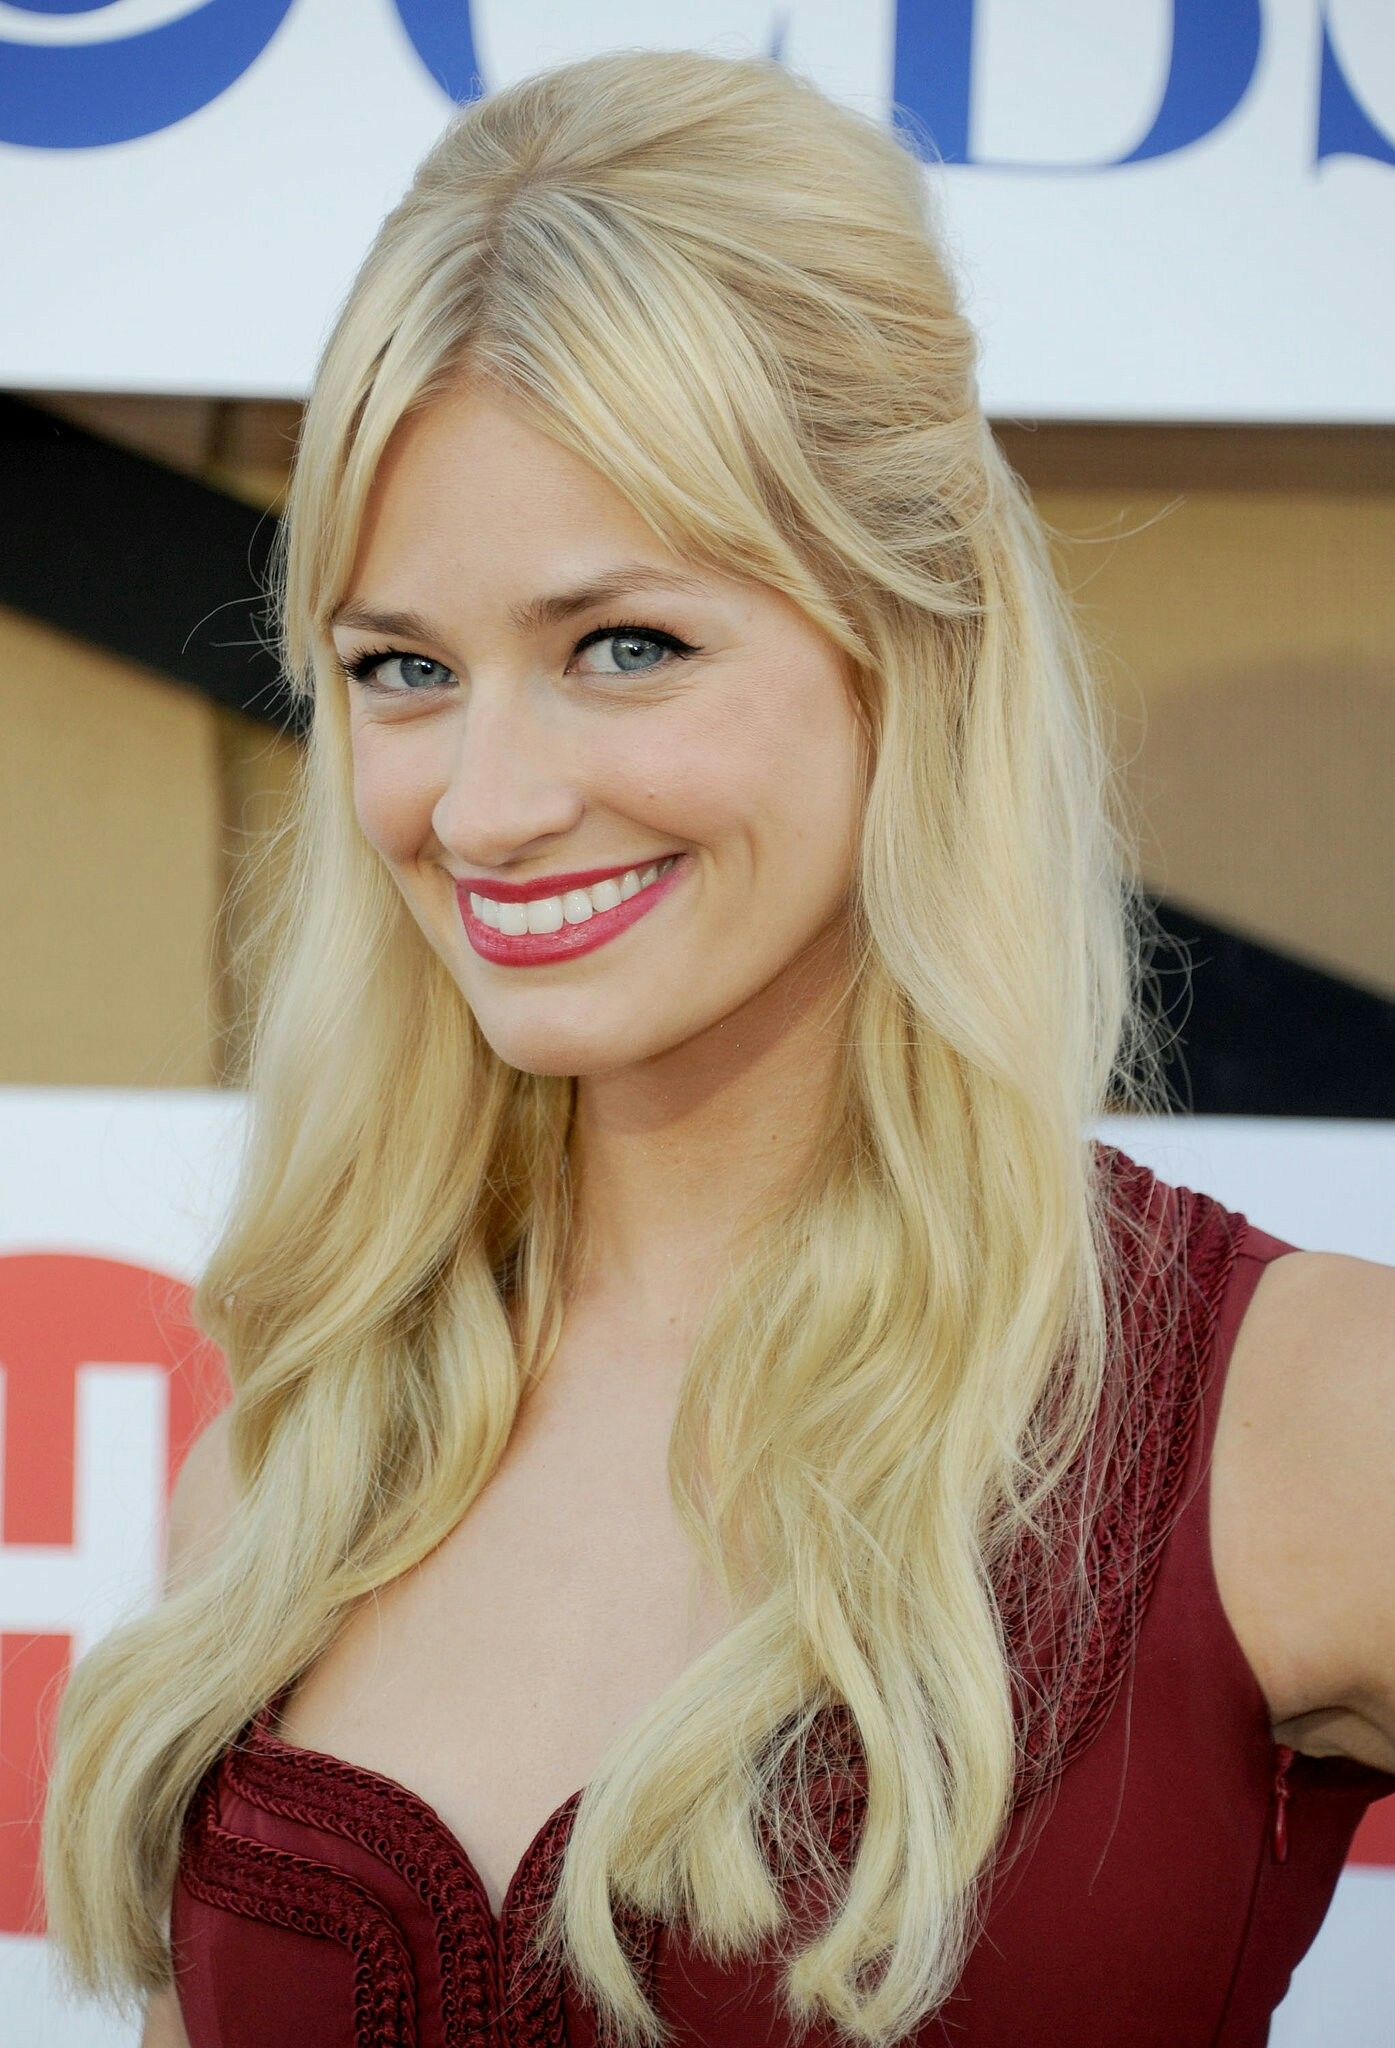 Pin by dave aberle on beth pinterest beth behrs actresses and